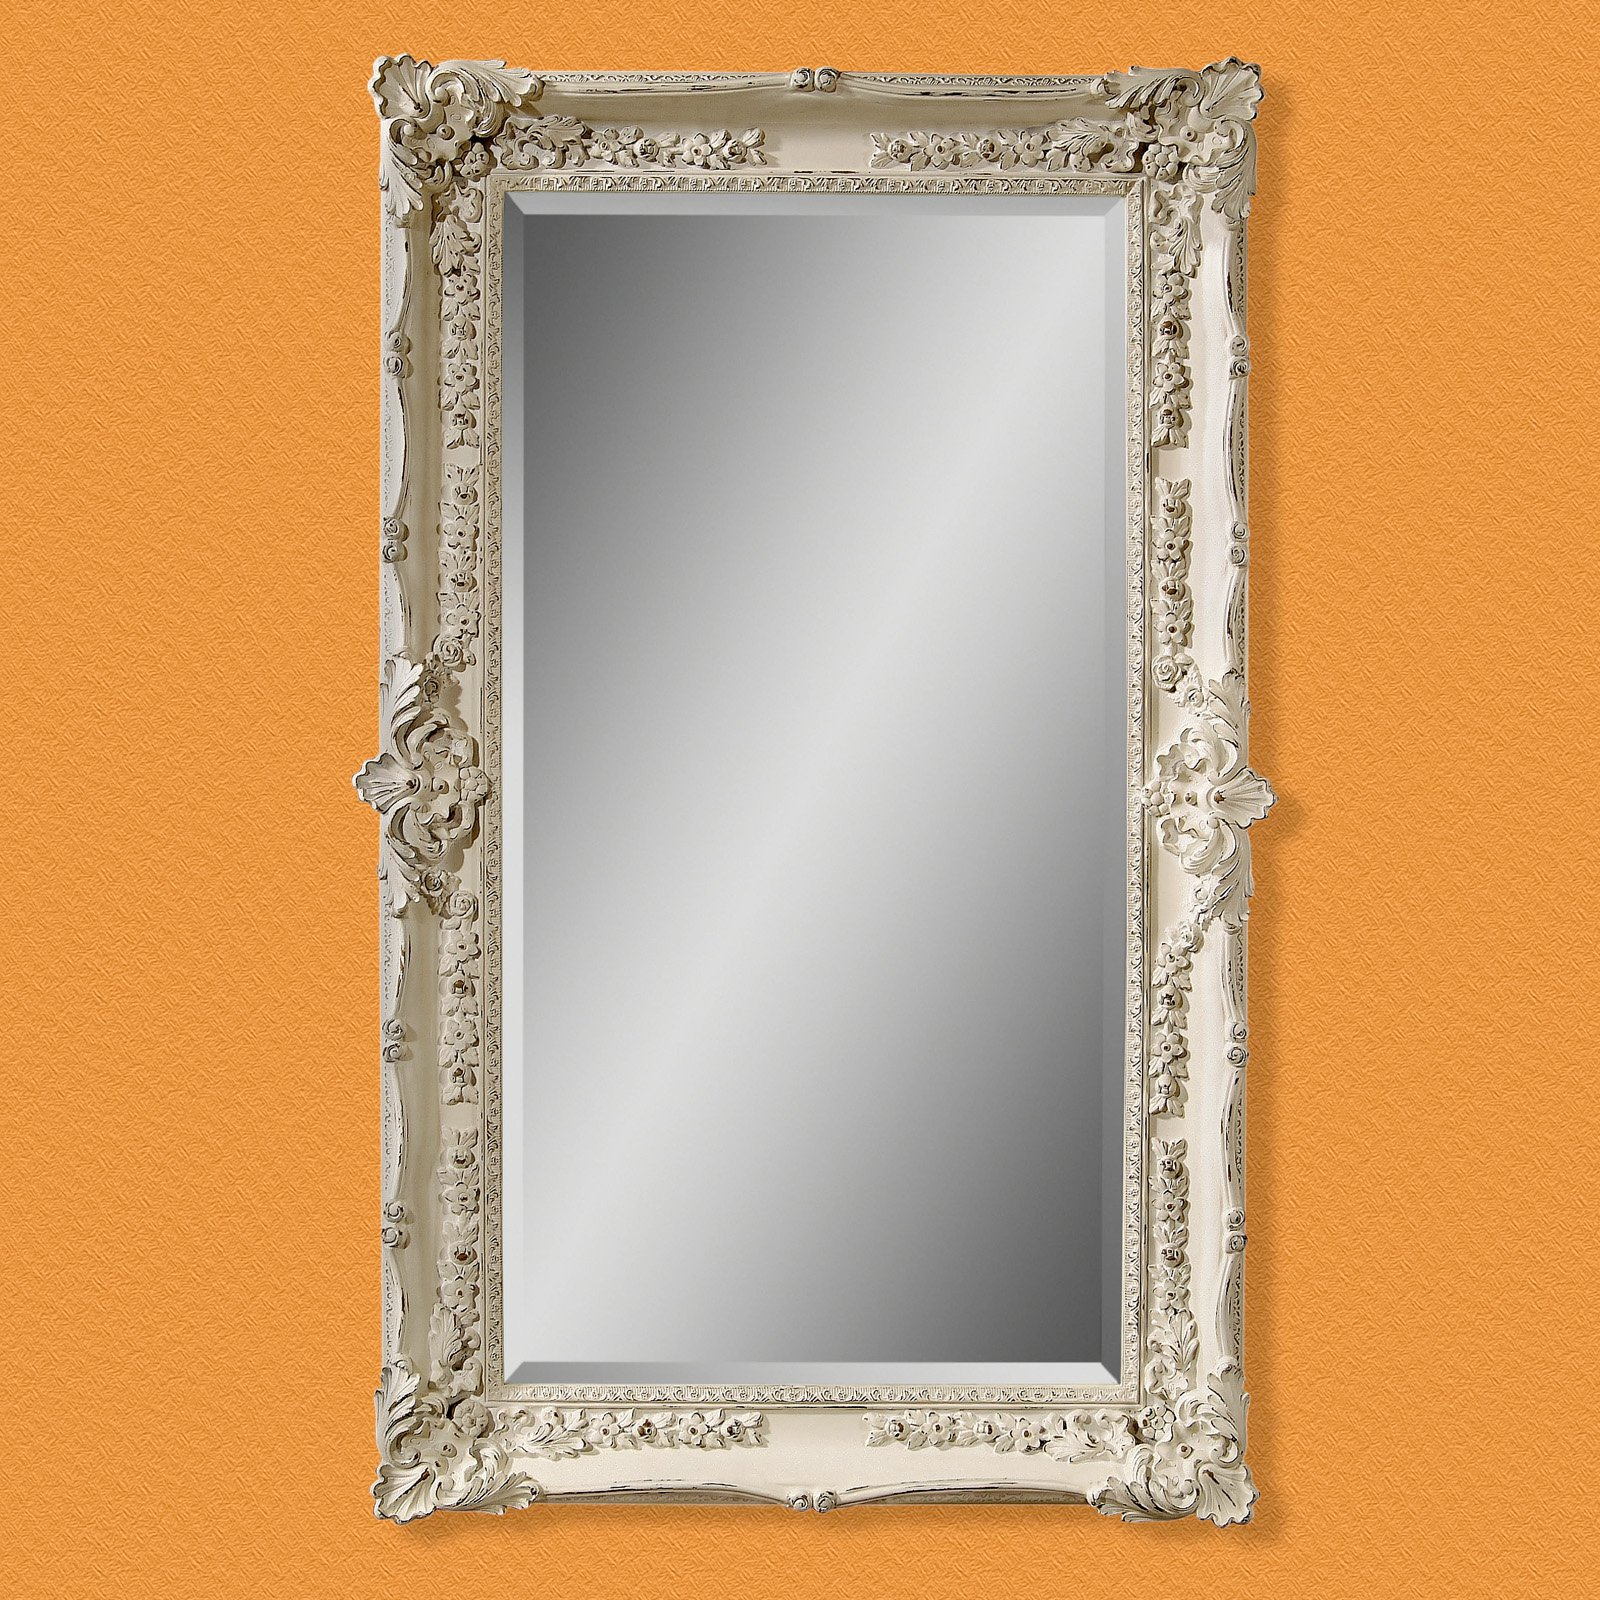 Large White Framed Wall Mirrors Pertaining To Popular Bathro Mirror Large Whitewash White Interior Wall Mirrors (View 12 of 20)